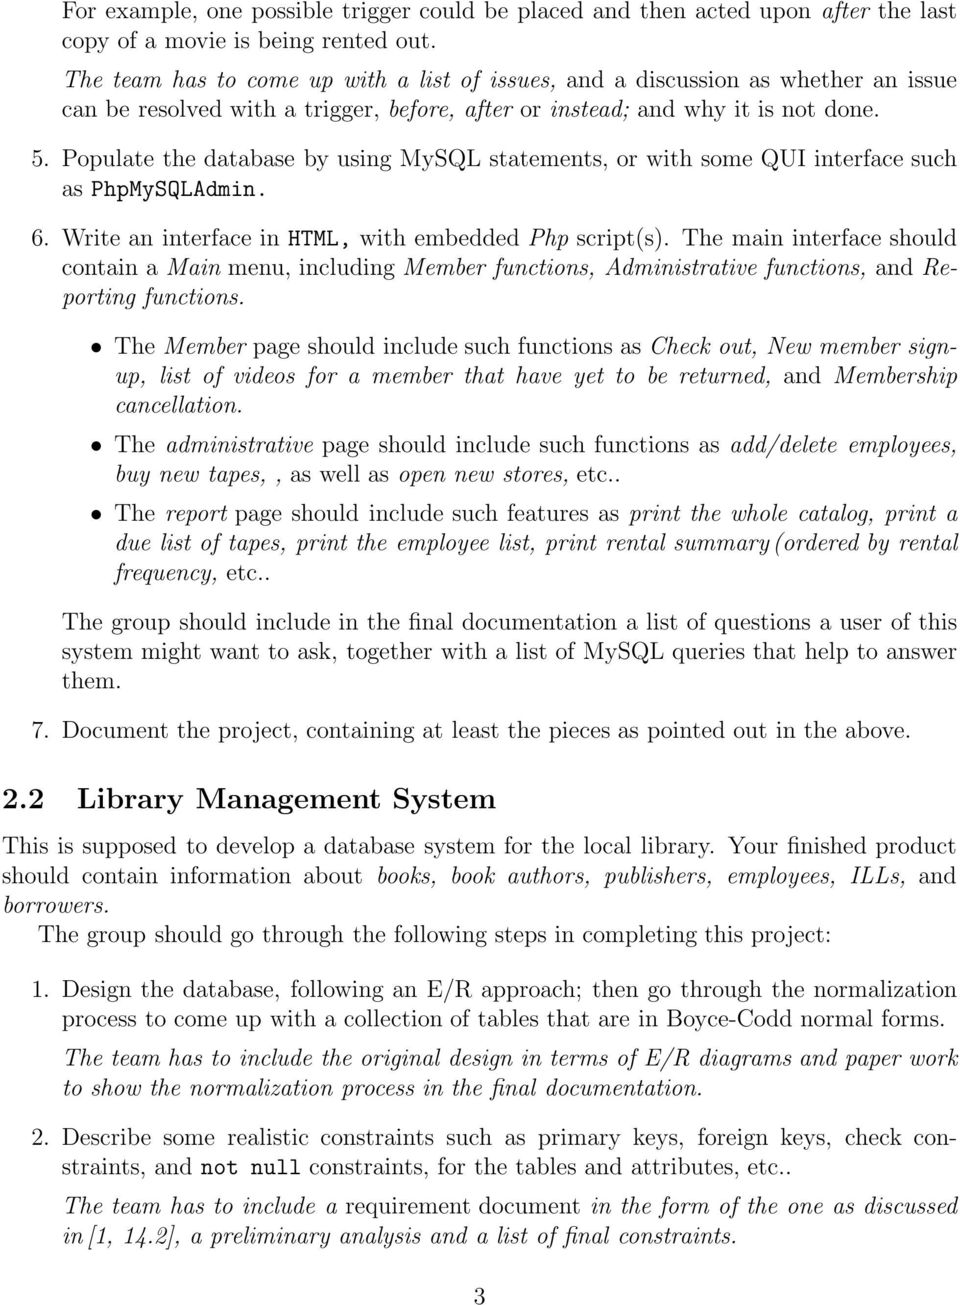 Database Programming Project Proposals - PDF Free Download